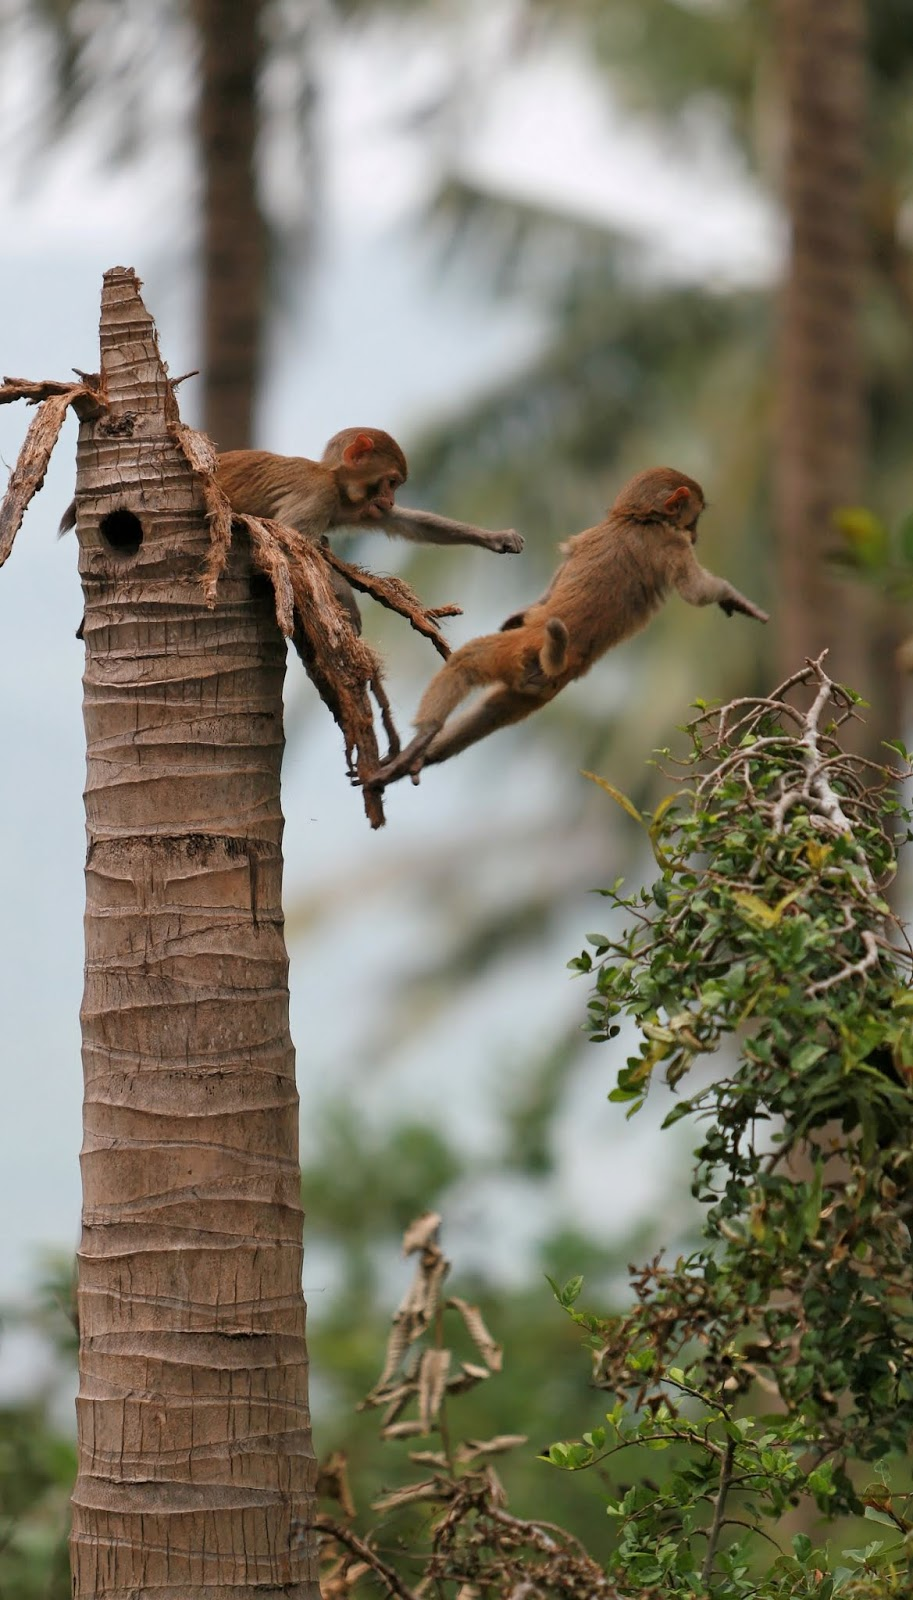 Young monkeys being adventurous